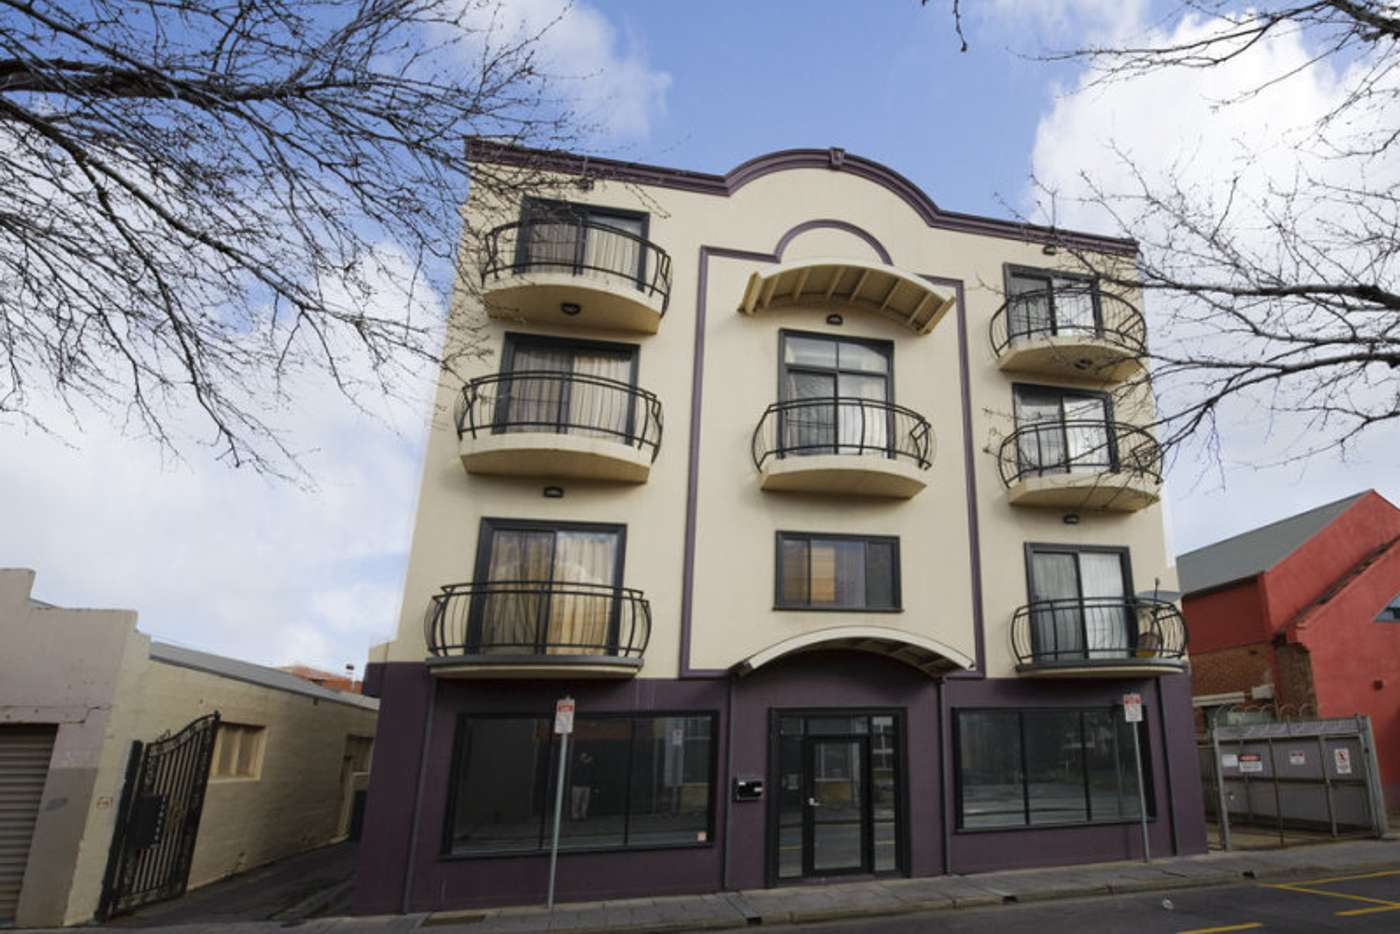 Main view of Homely apartment listing, 9/29-31 Compton Street, Adelaide SA 5000